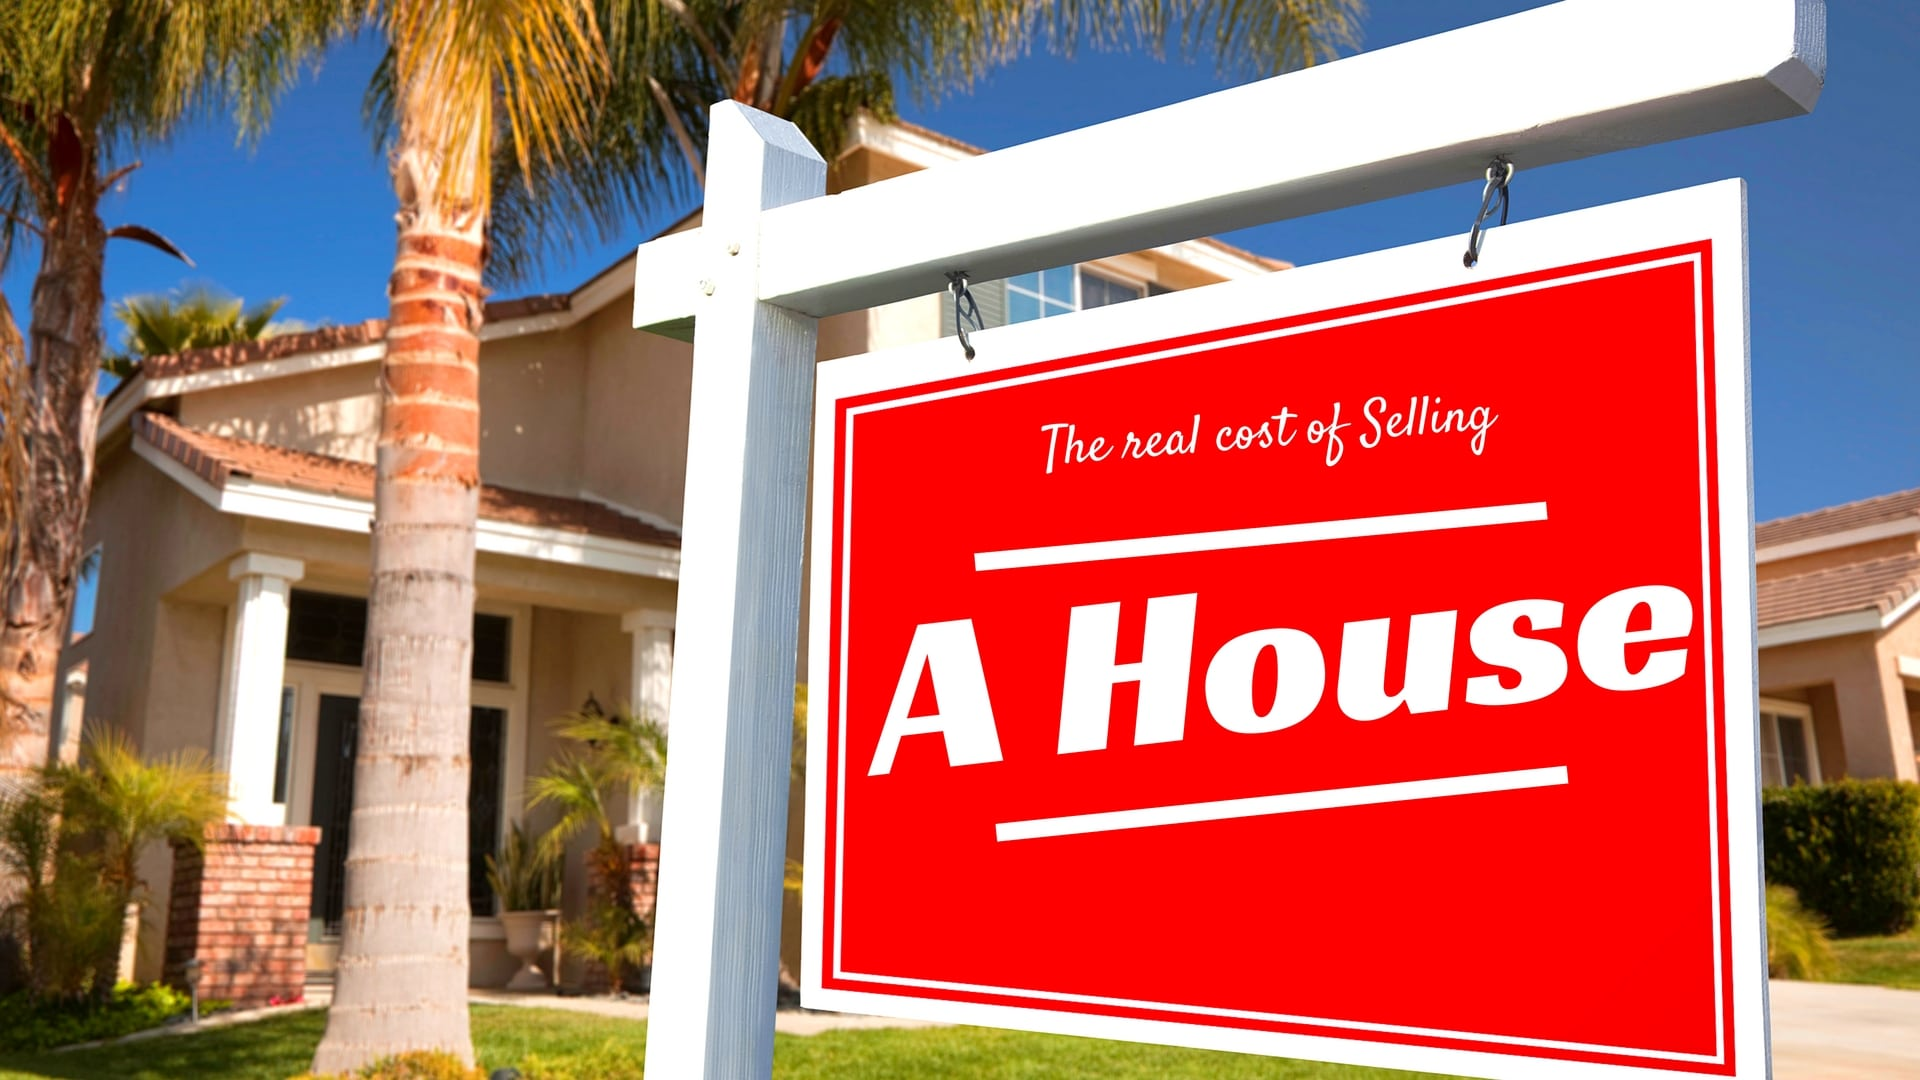 Cost of Selling a House